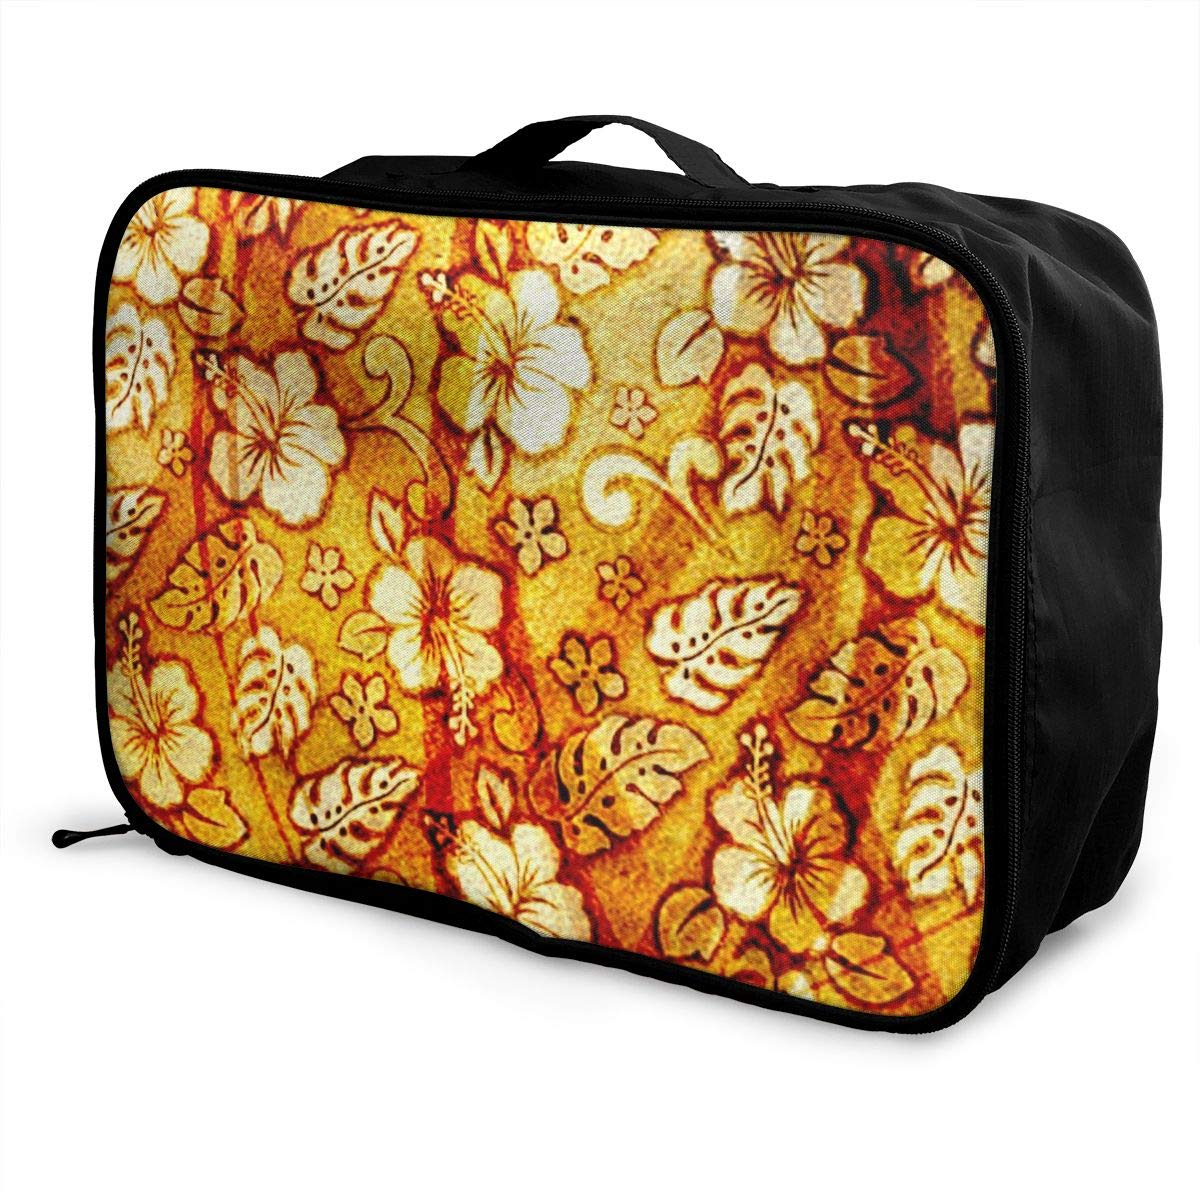 Abstract Art Flower Travel Lightweight Waterproof Foldable Storage Carry Luggage Large Capacity Portable Luggage Bag Duffel Bag